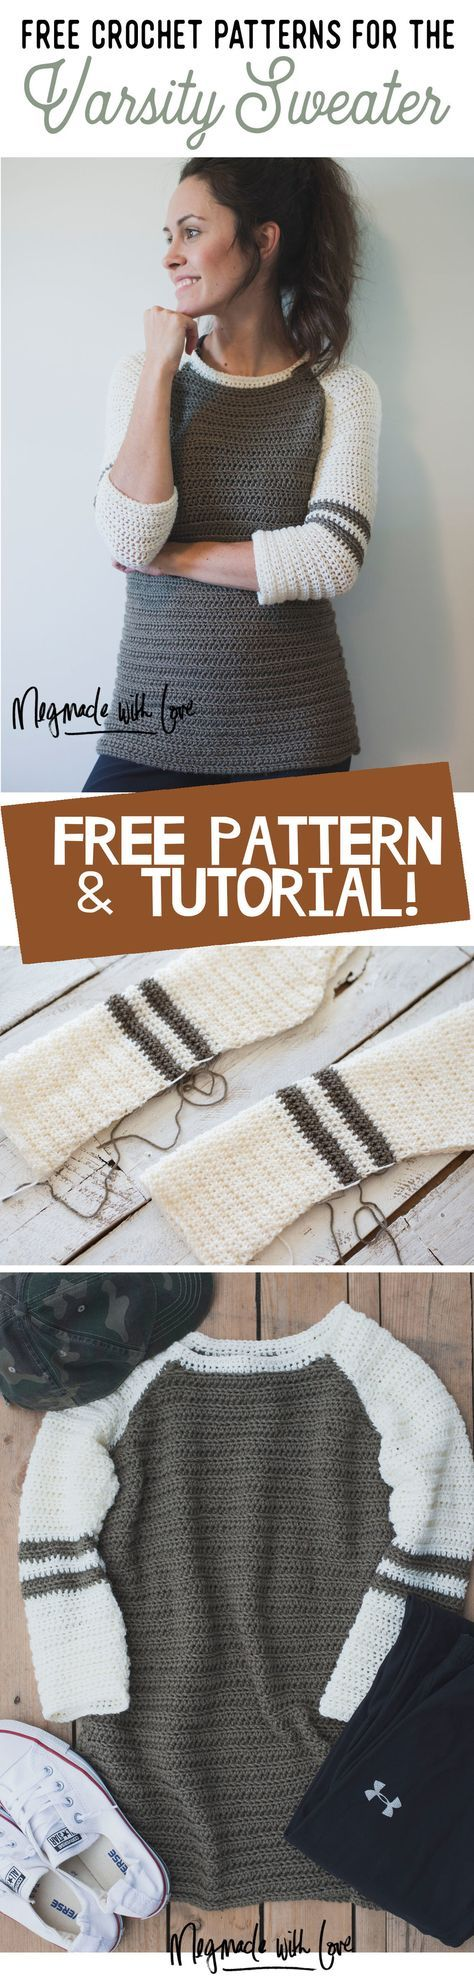 Free Crochet Pattern for the Varsity Sweater - Megmade with Love